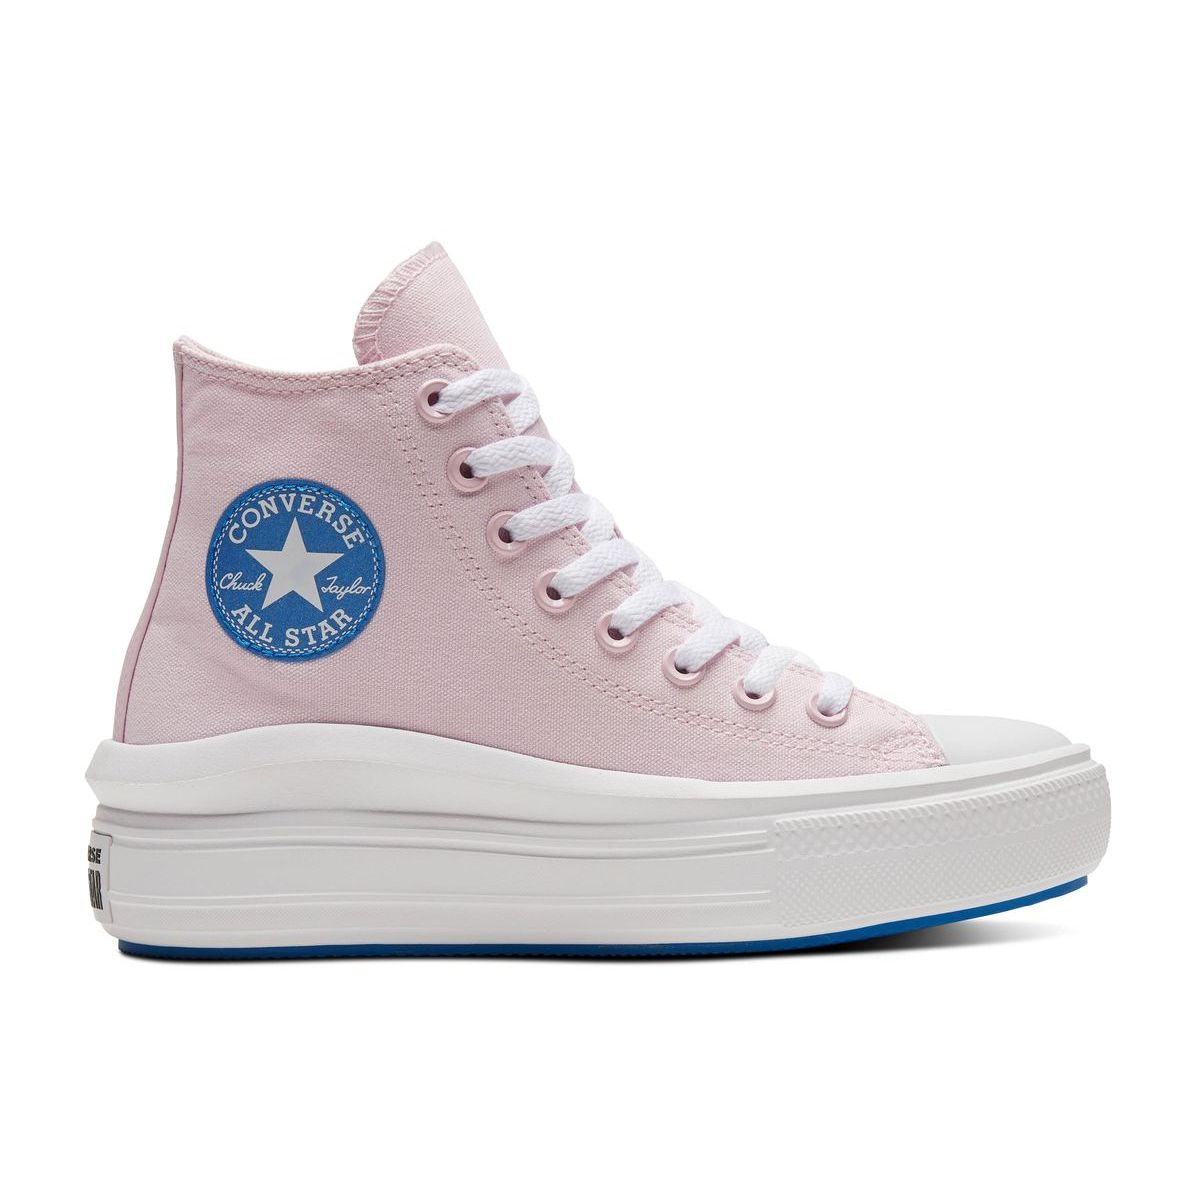 TENNIS ELLY CHUCK TAYLOR HI MOVE:ROSE/CANVAS/TEXITLE/CAOUTCHOUC/Rose